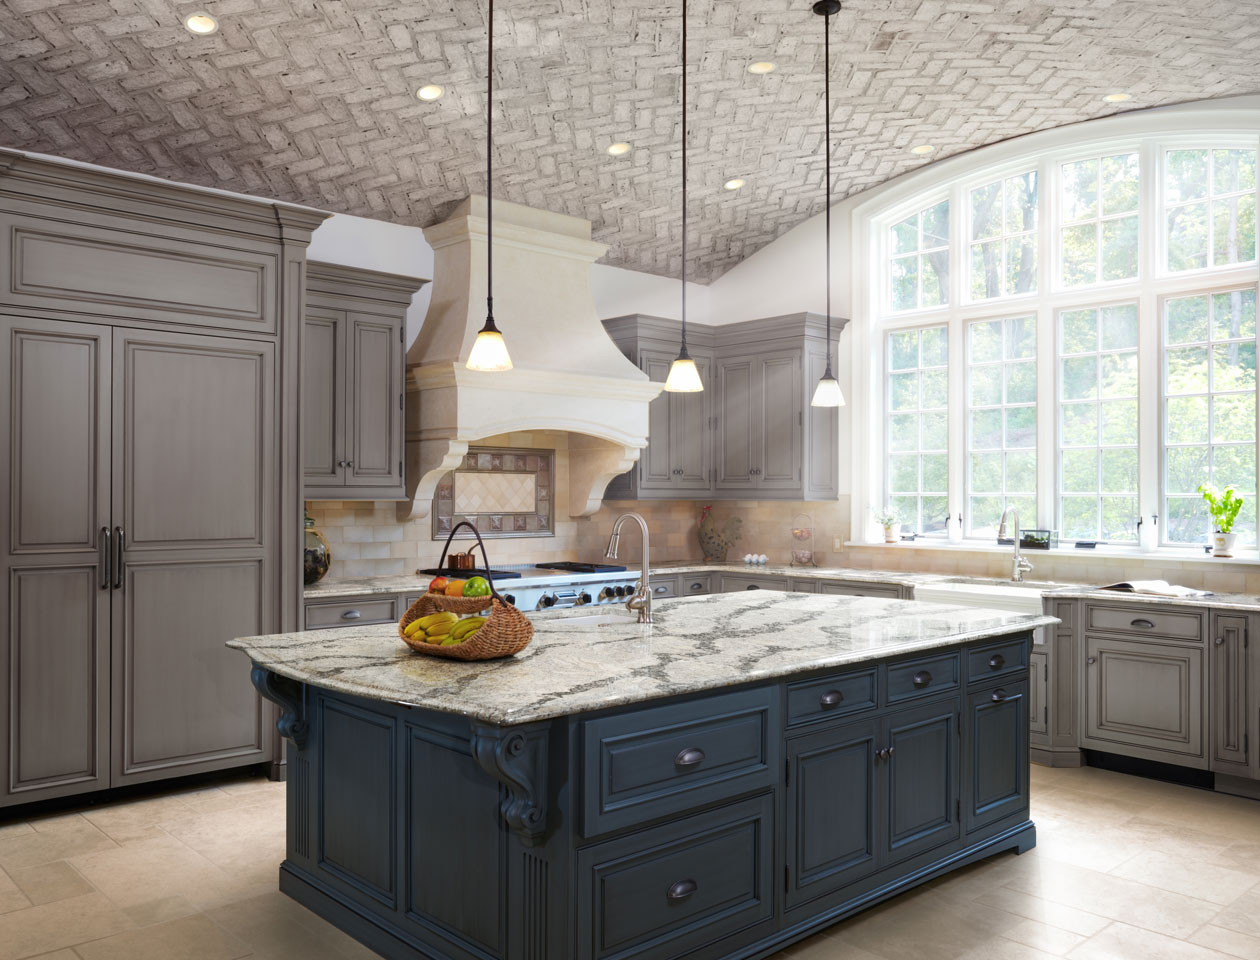 New Hampshire Cambria Quartz Countertops Dealer Starting